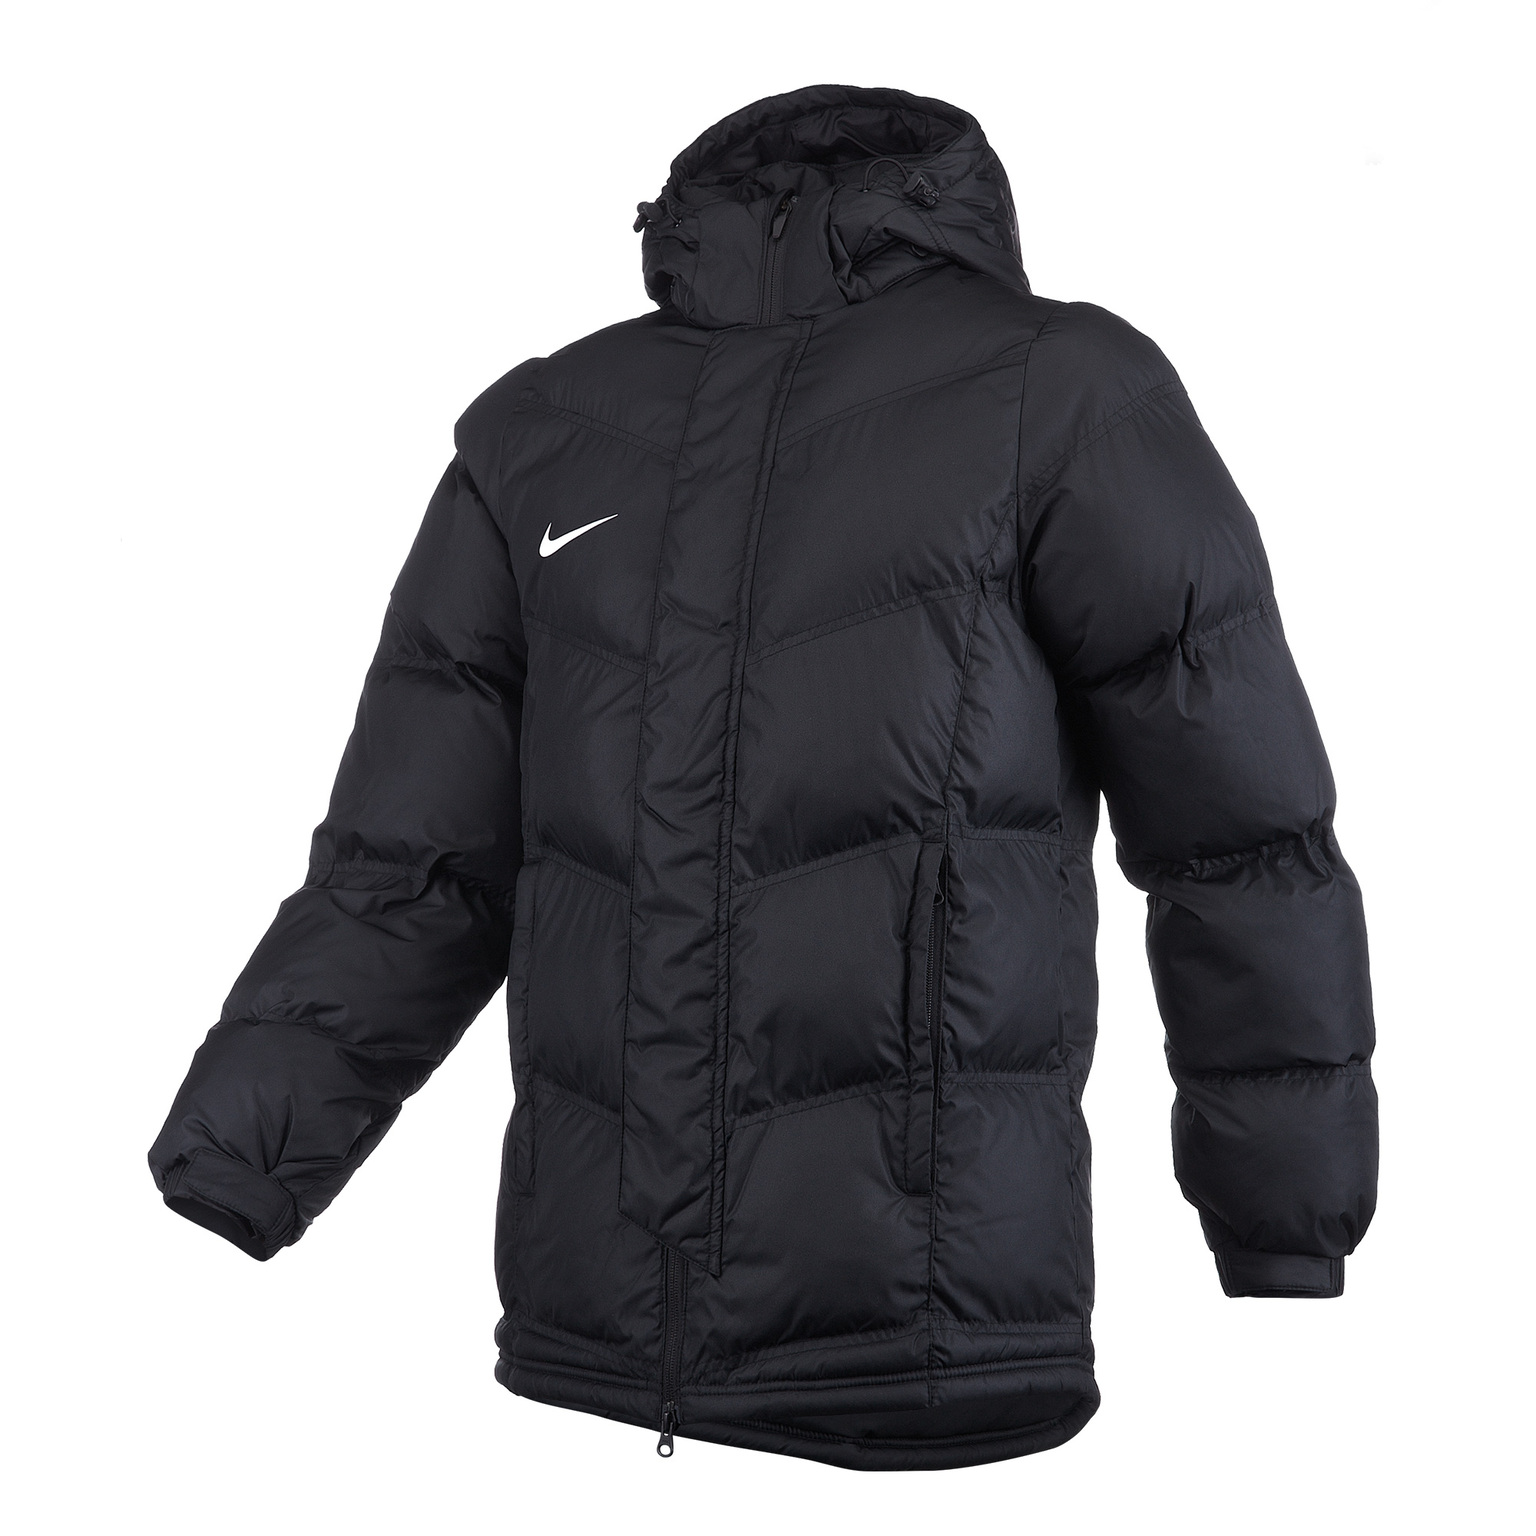 Куртка Nike Team Winter JKT 645484-010 куртка nike team winter jkt 645484 010